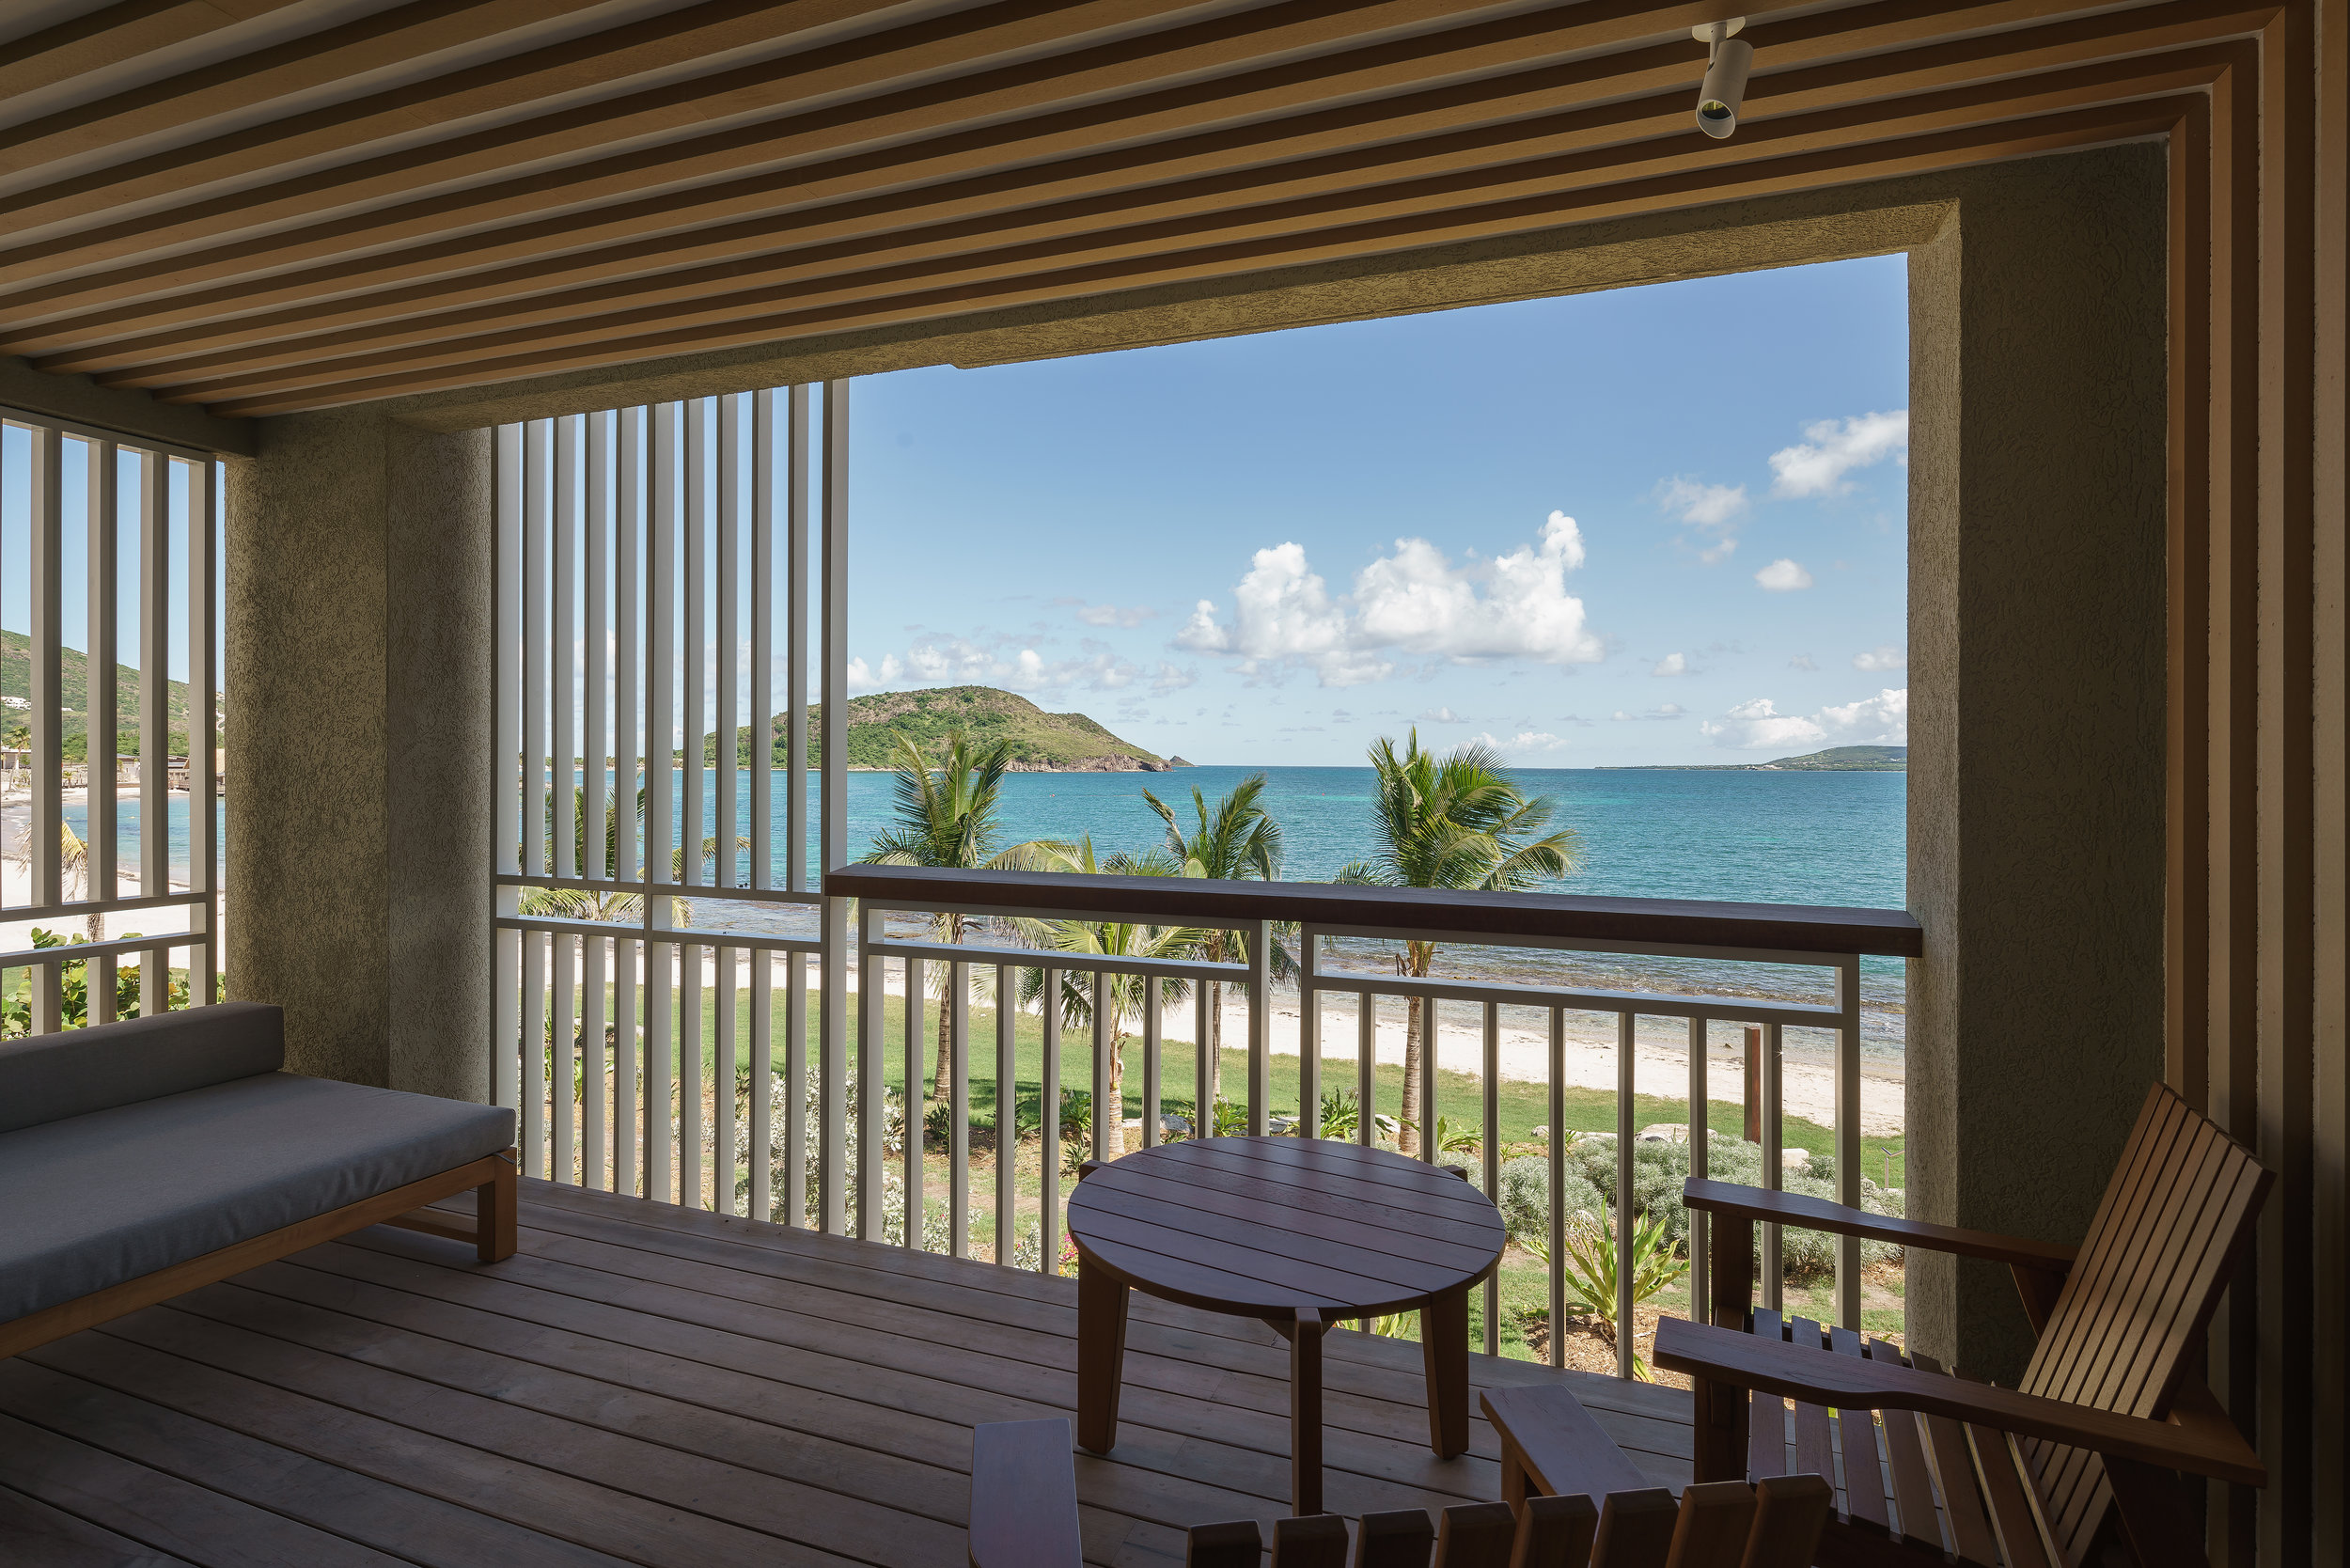 Park-Hyatt-St-Kitts-Balcony-Sea-View.jpg